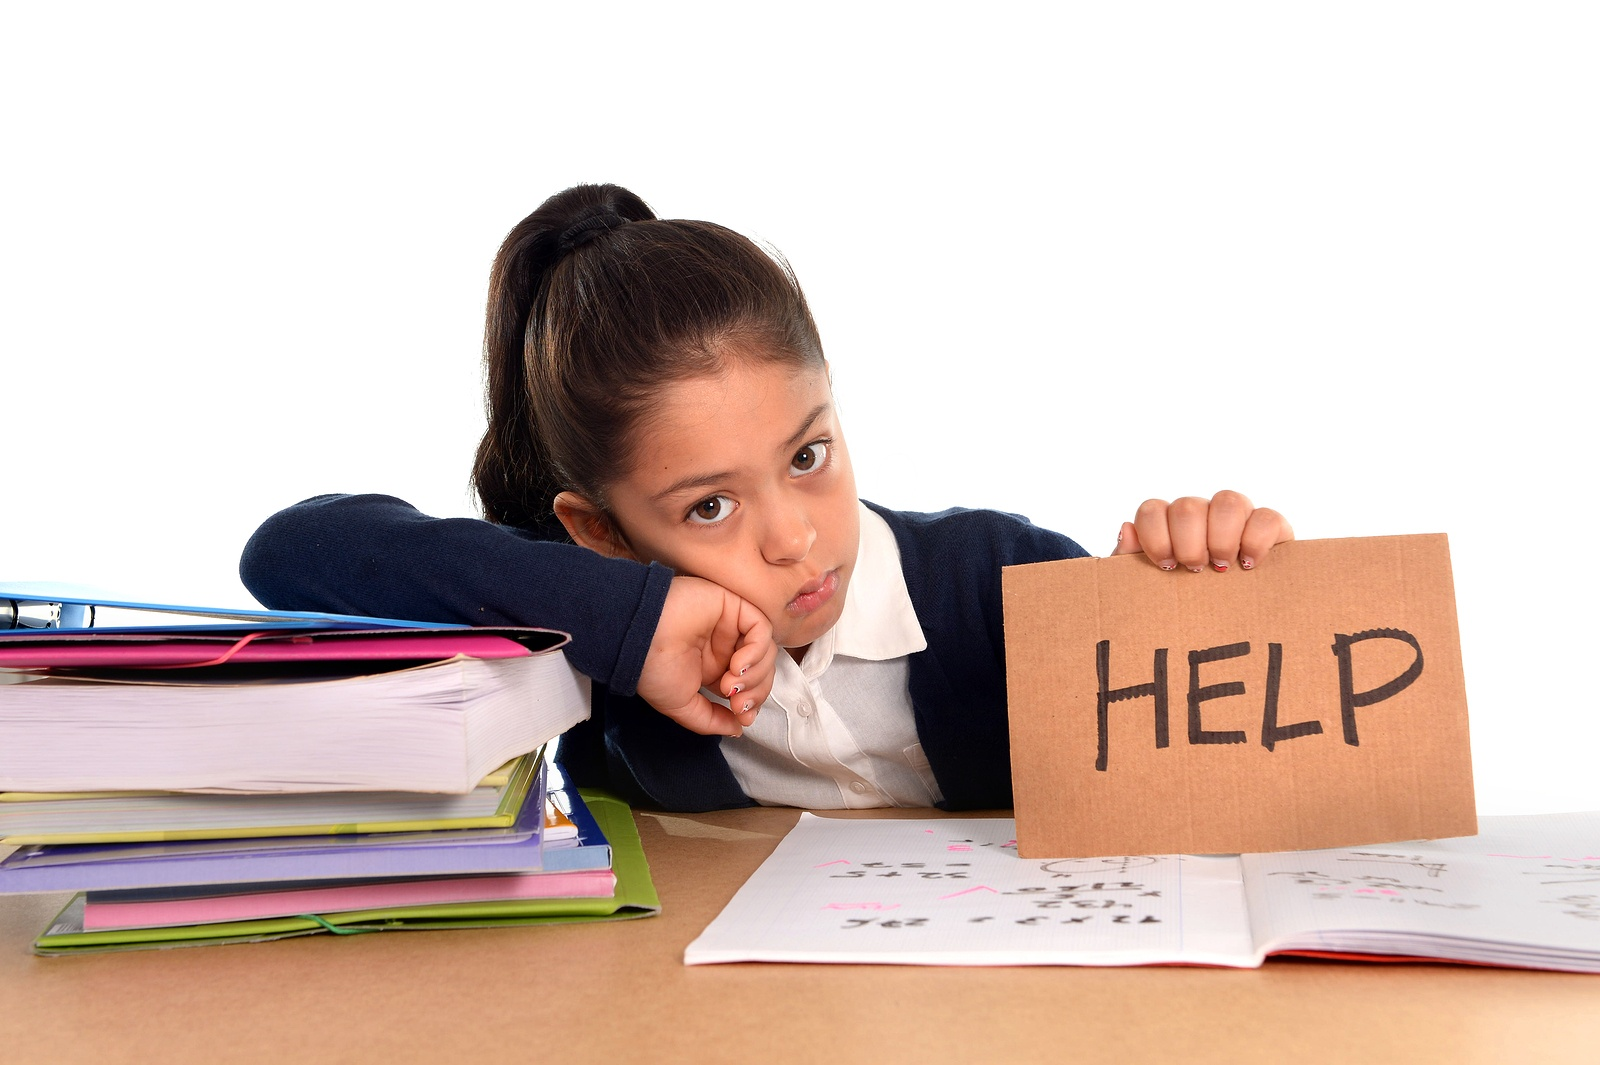 stress of work and school Stress is good if it motivates you but it's bad if it wears you down balancing work and school taking a leave of absence: what you need to know.